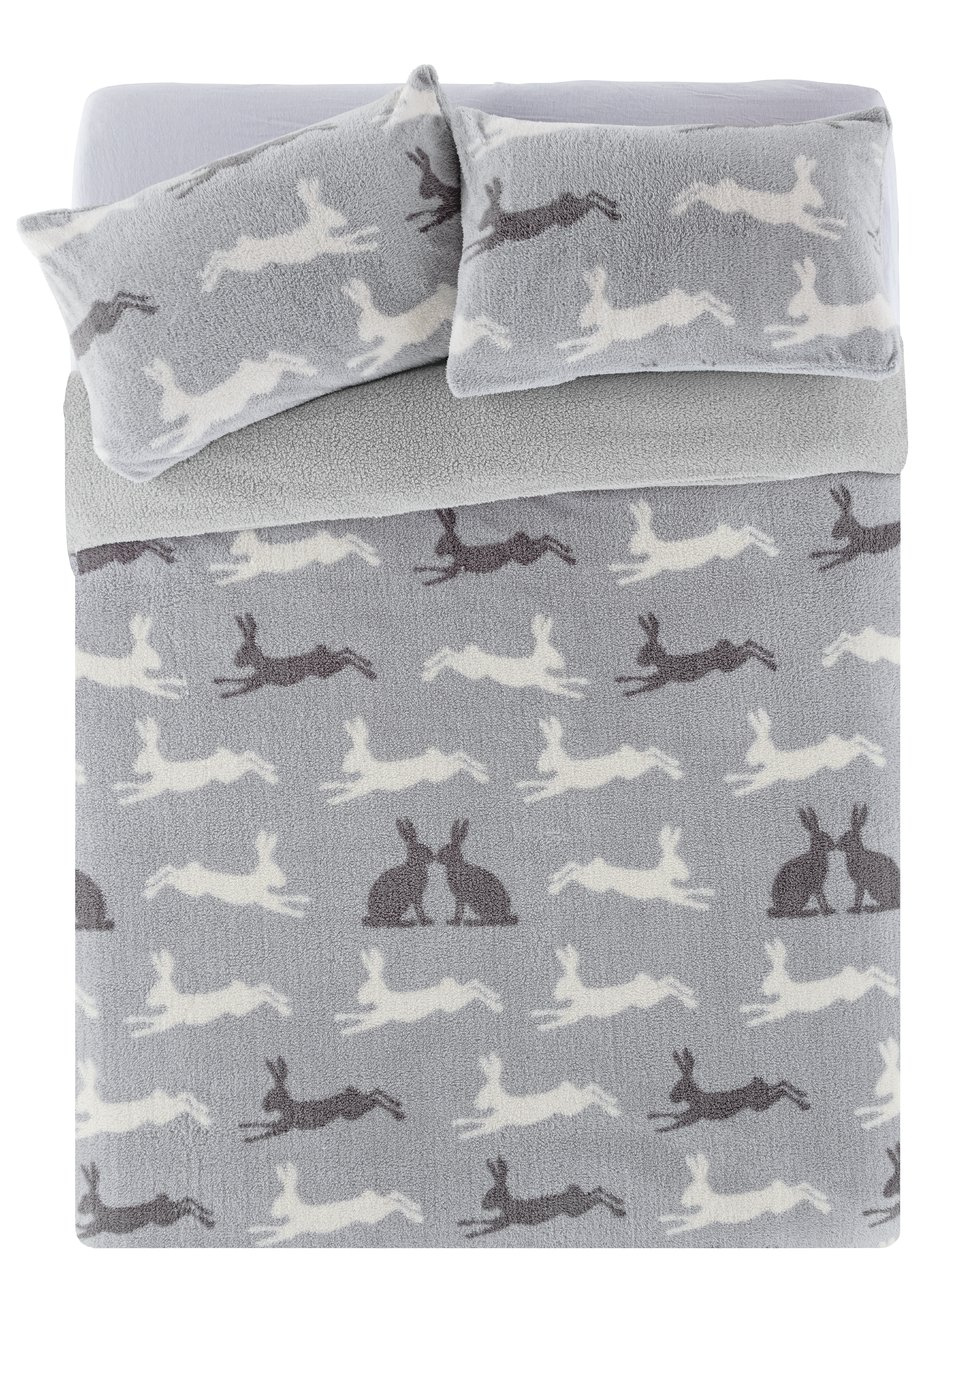 Argos Home Fleece Hare Bedding Set - Kingsize